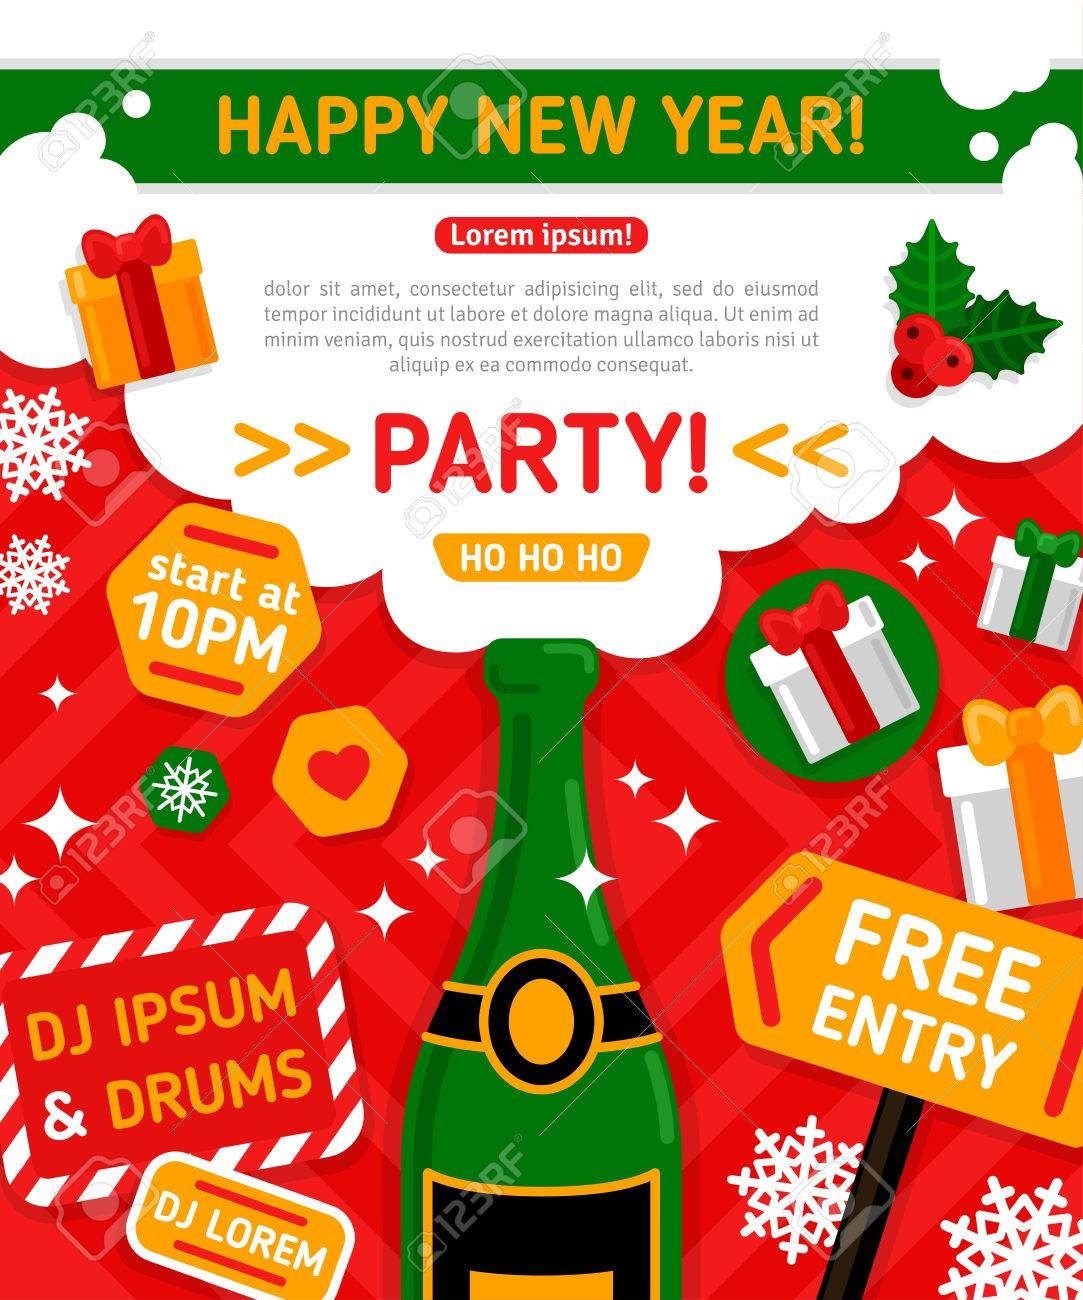 Merry Christmas And Happy New Year Party Invitation Card Vector